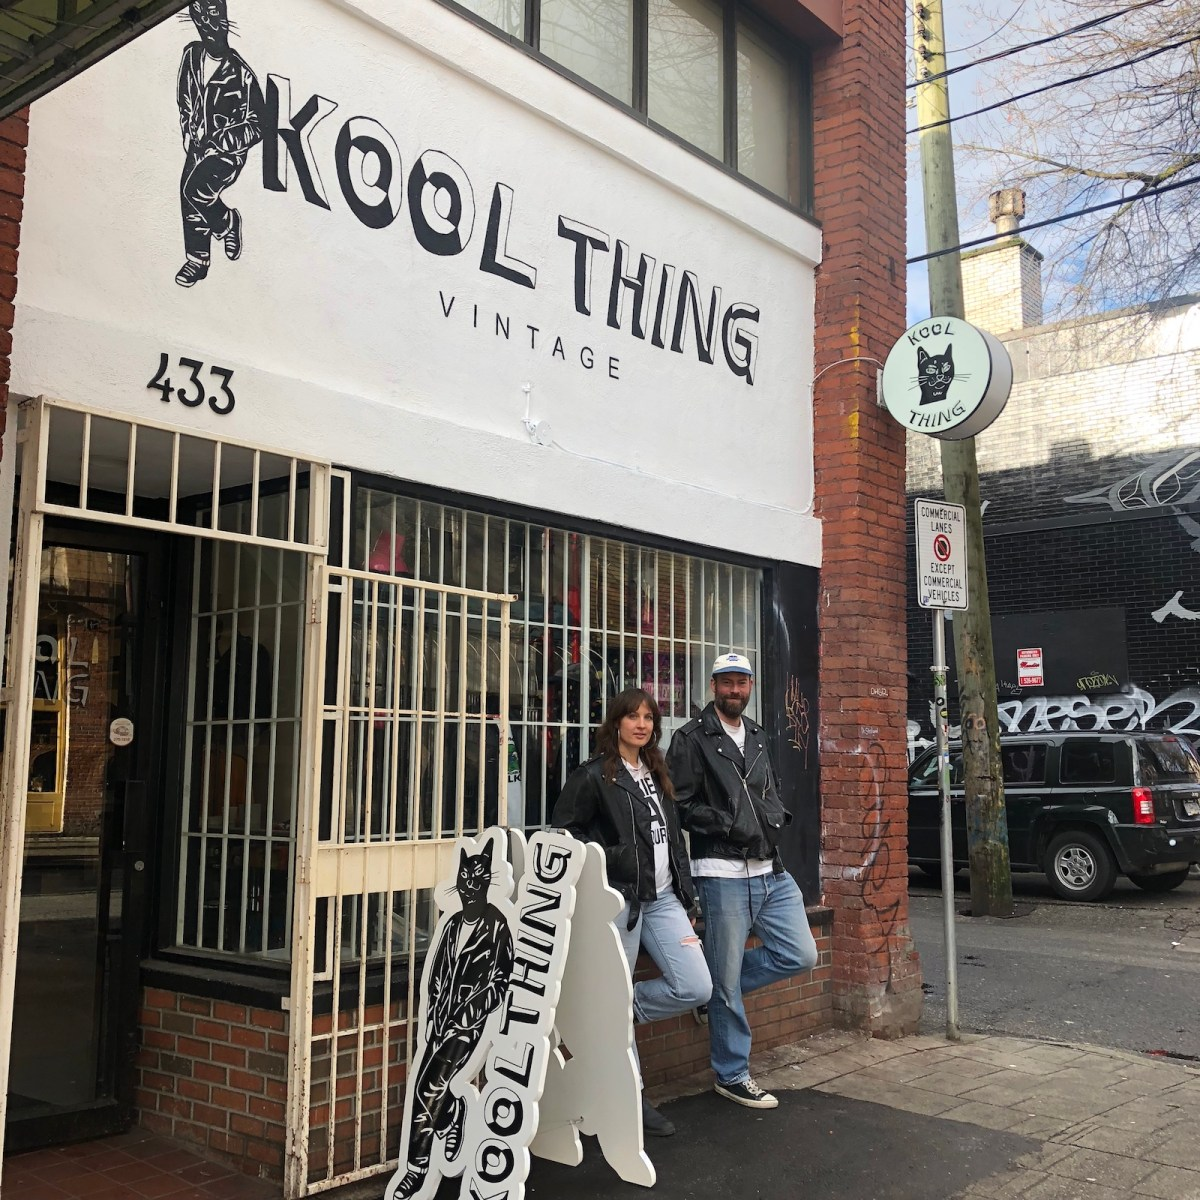 d95fcb49b Meet the Thrifty Duo Behind Chinatown's New 'Kool Thing Vintage ...